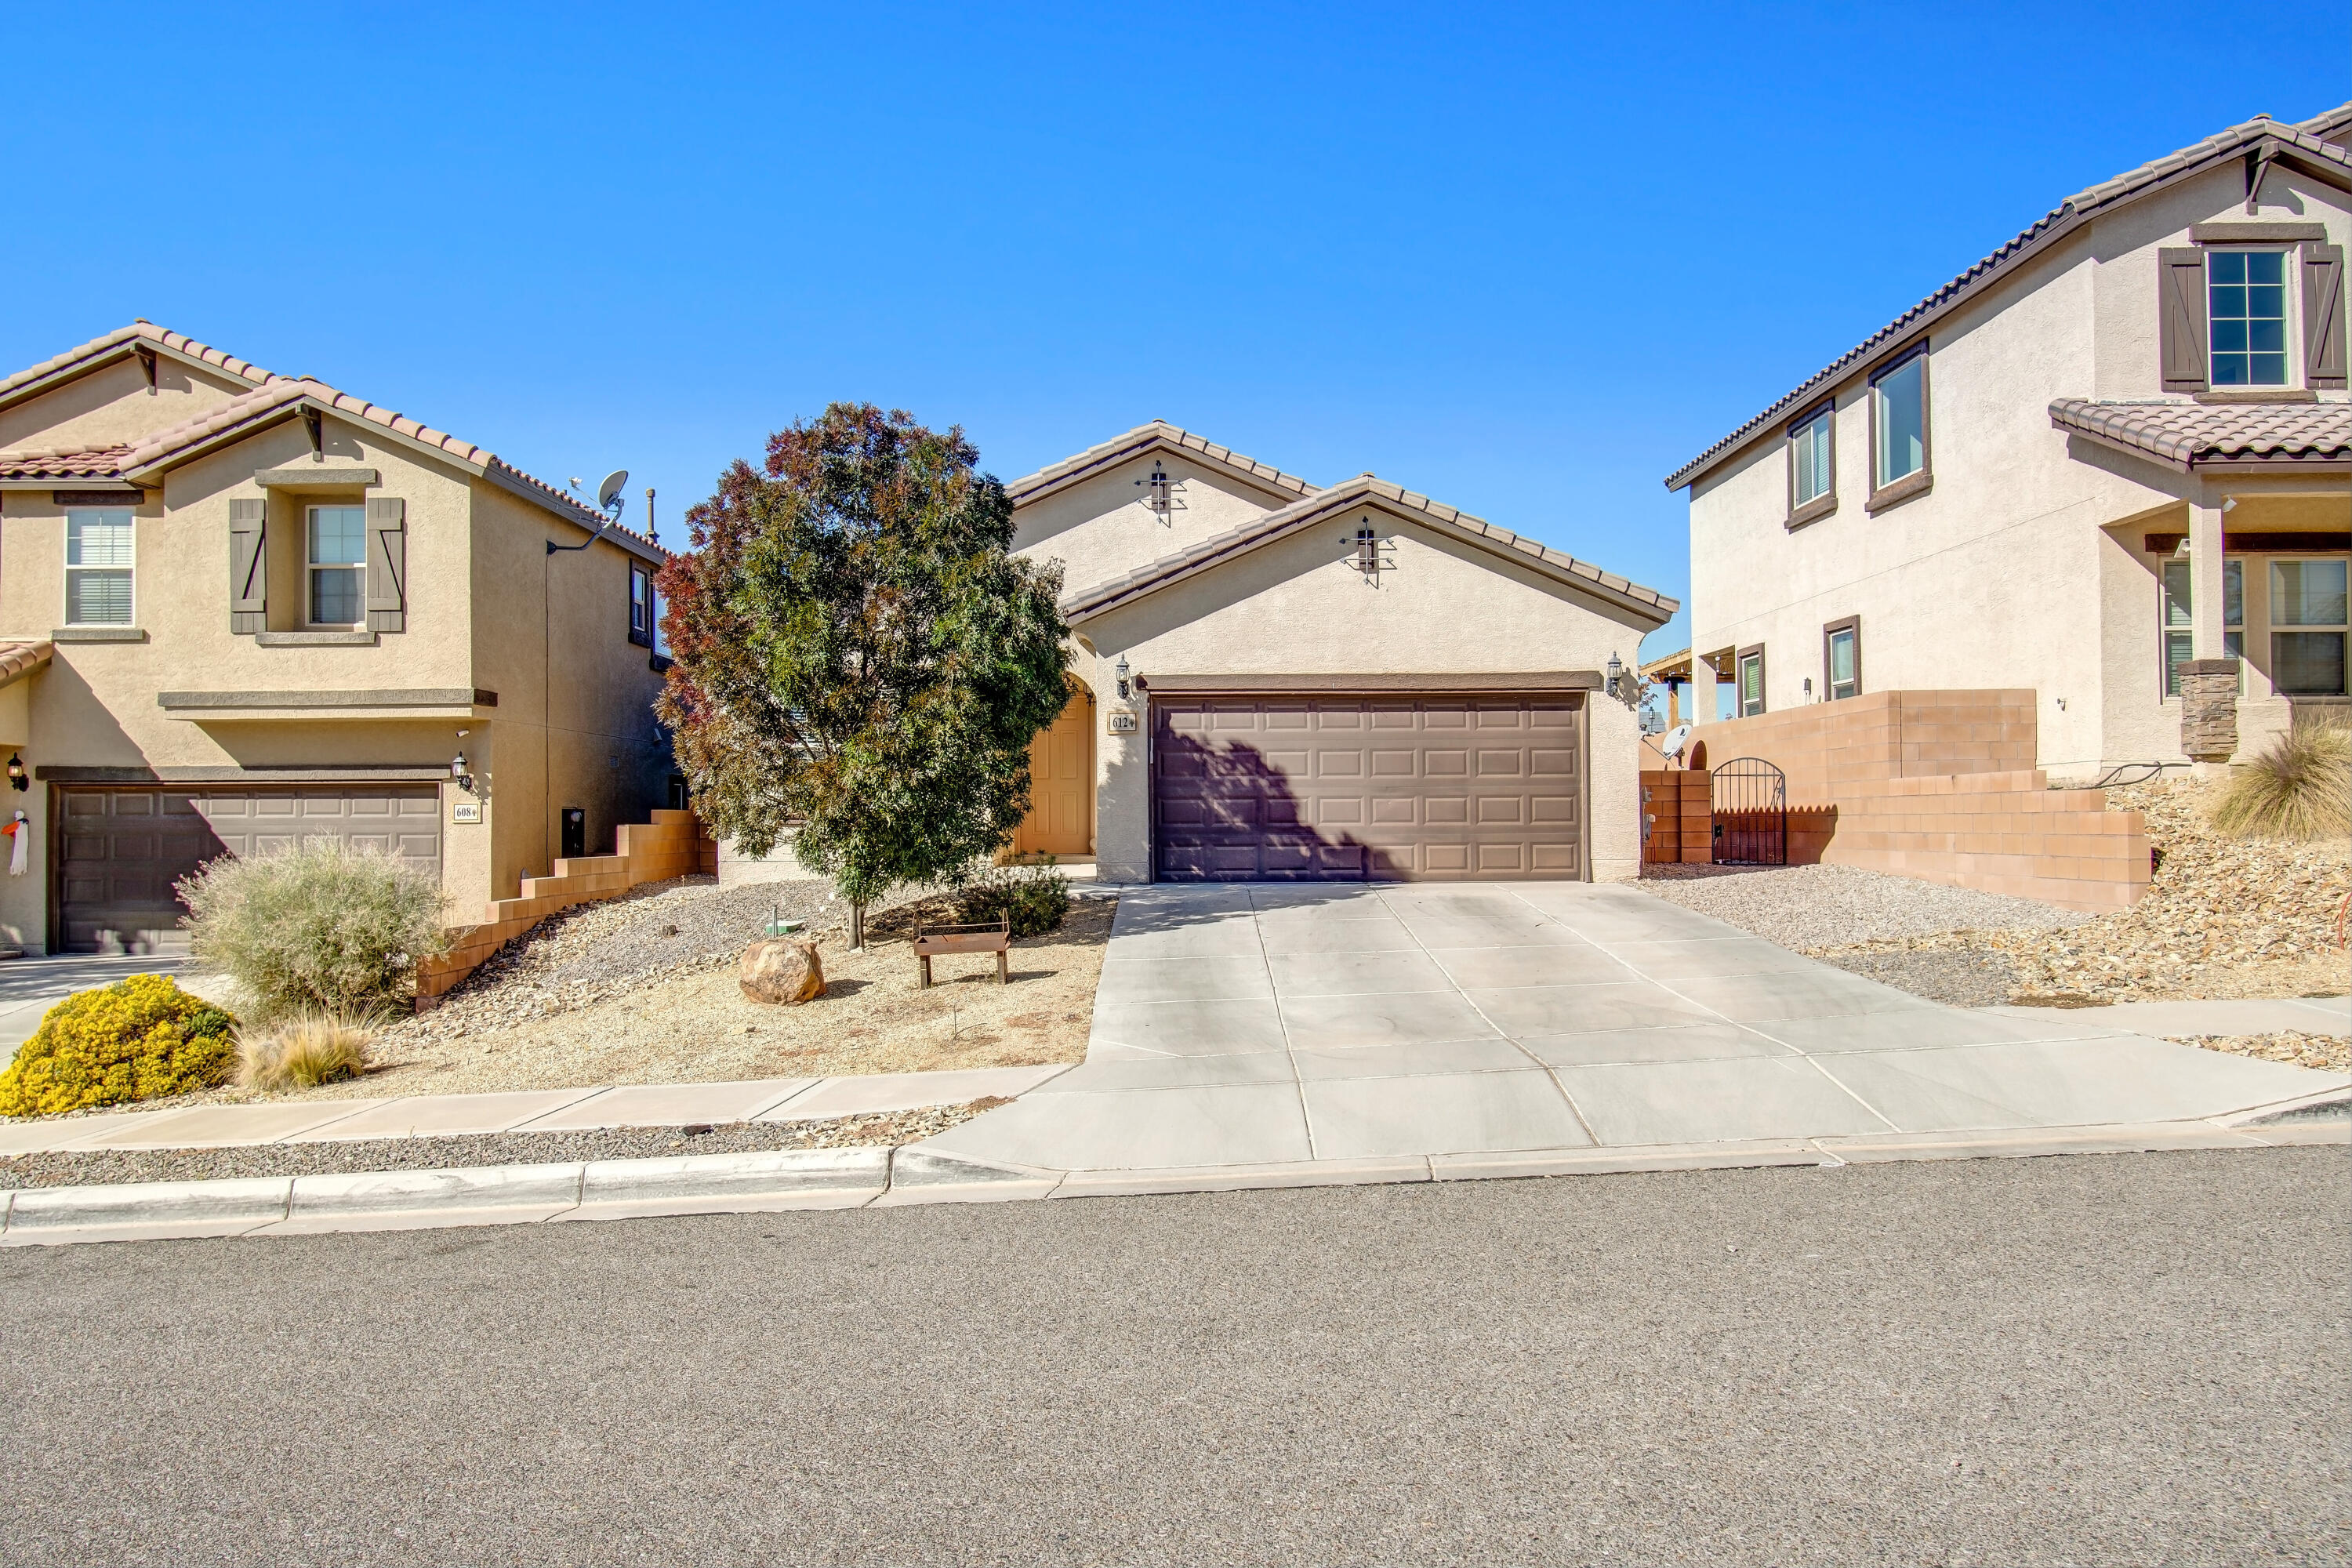 Beautiful home in the heart of Rio Rancho located in the highly desired Loma Colorado Subdivision.  Enjoy this open floorplan with plenty of space for all.  Master is nicely tucked away for privacy.   Back yard is ready for enjoying fall evening with loved ones.  Don't miss your chance to see this one.